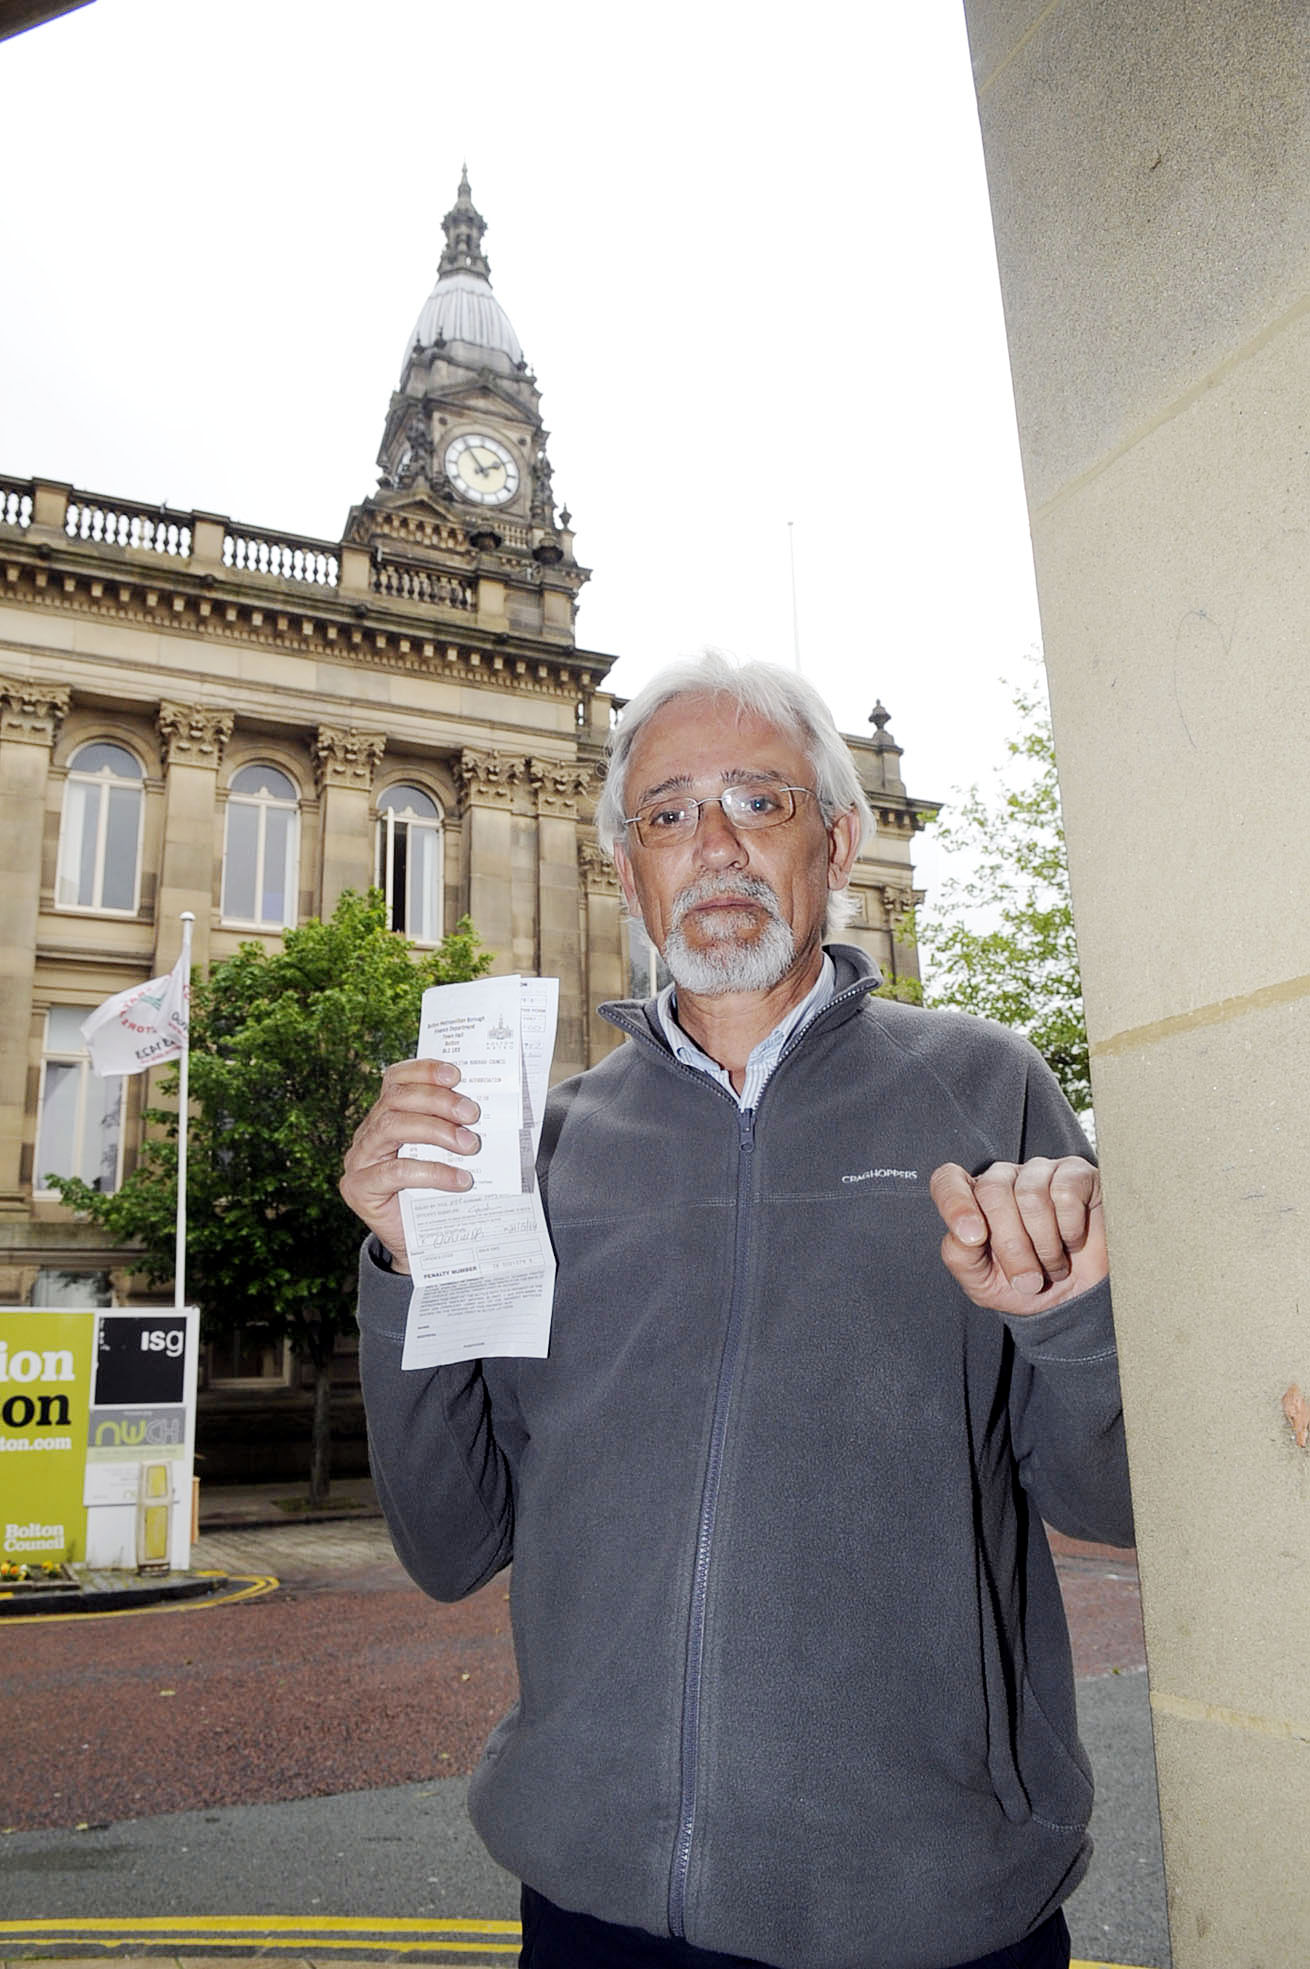 'Not enough warning signs', says smoker after he is fined £50 for dropping cigarette end